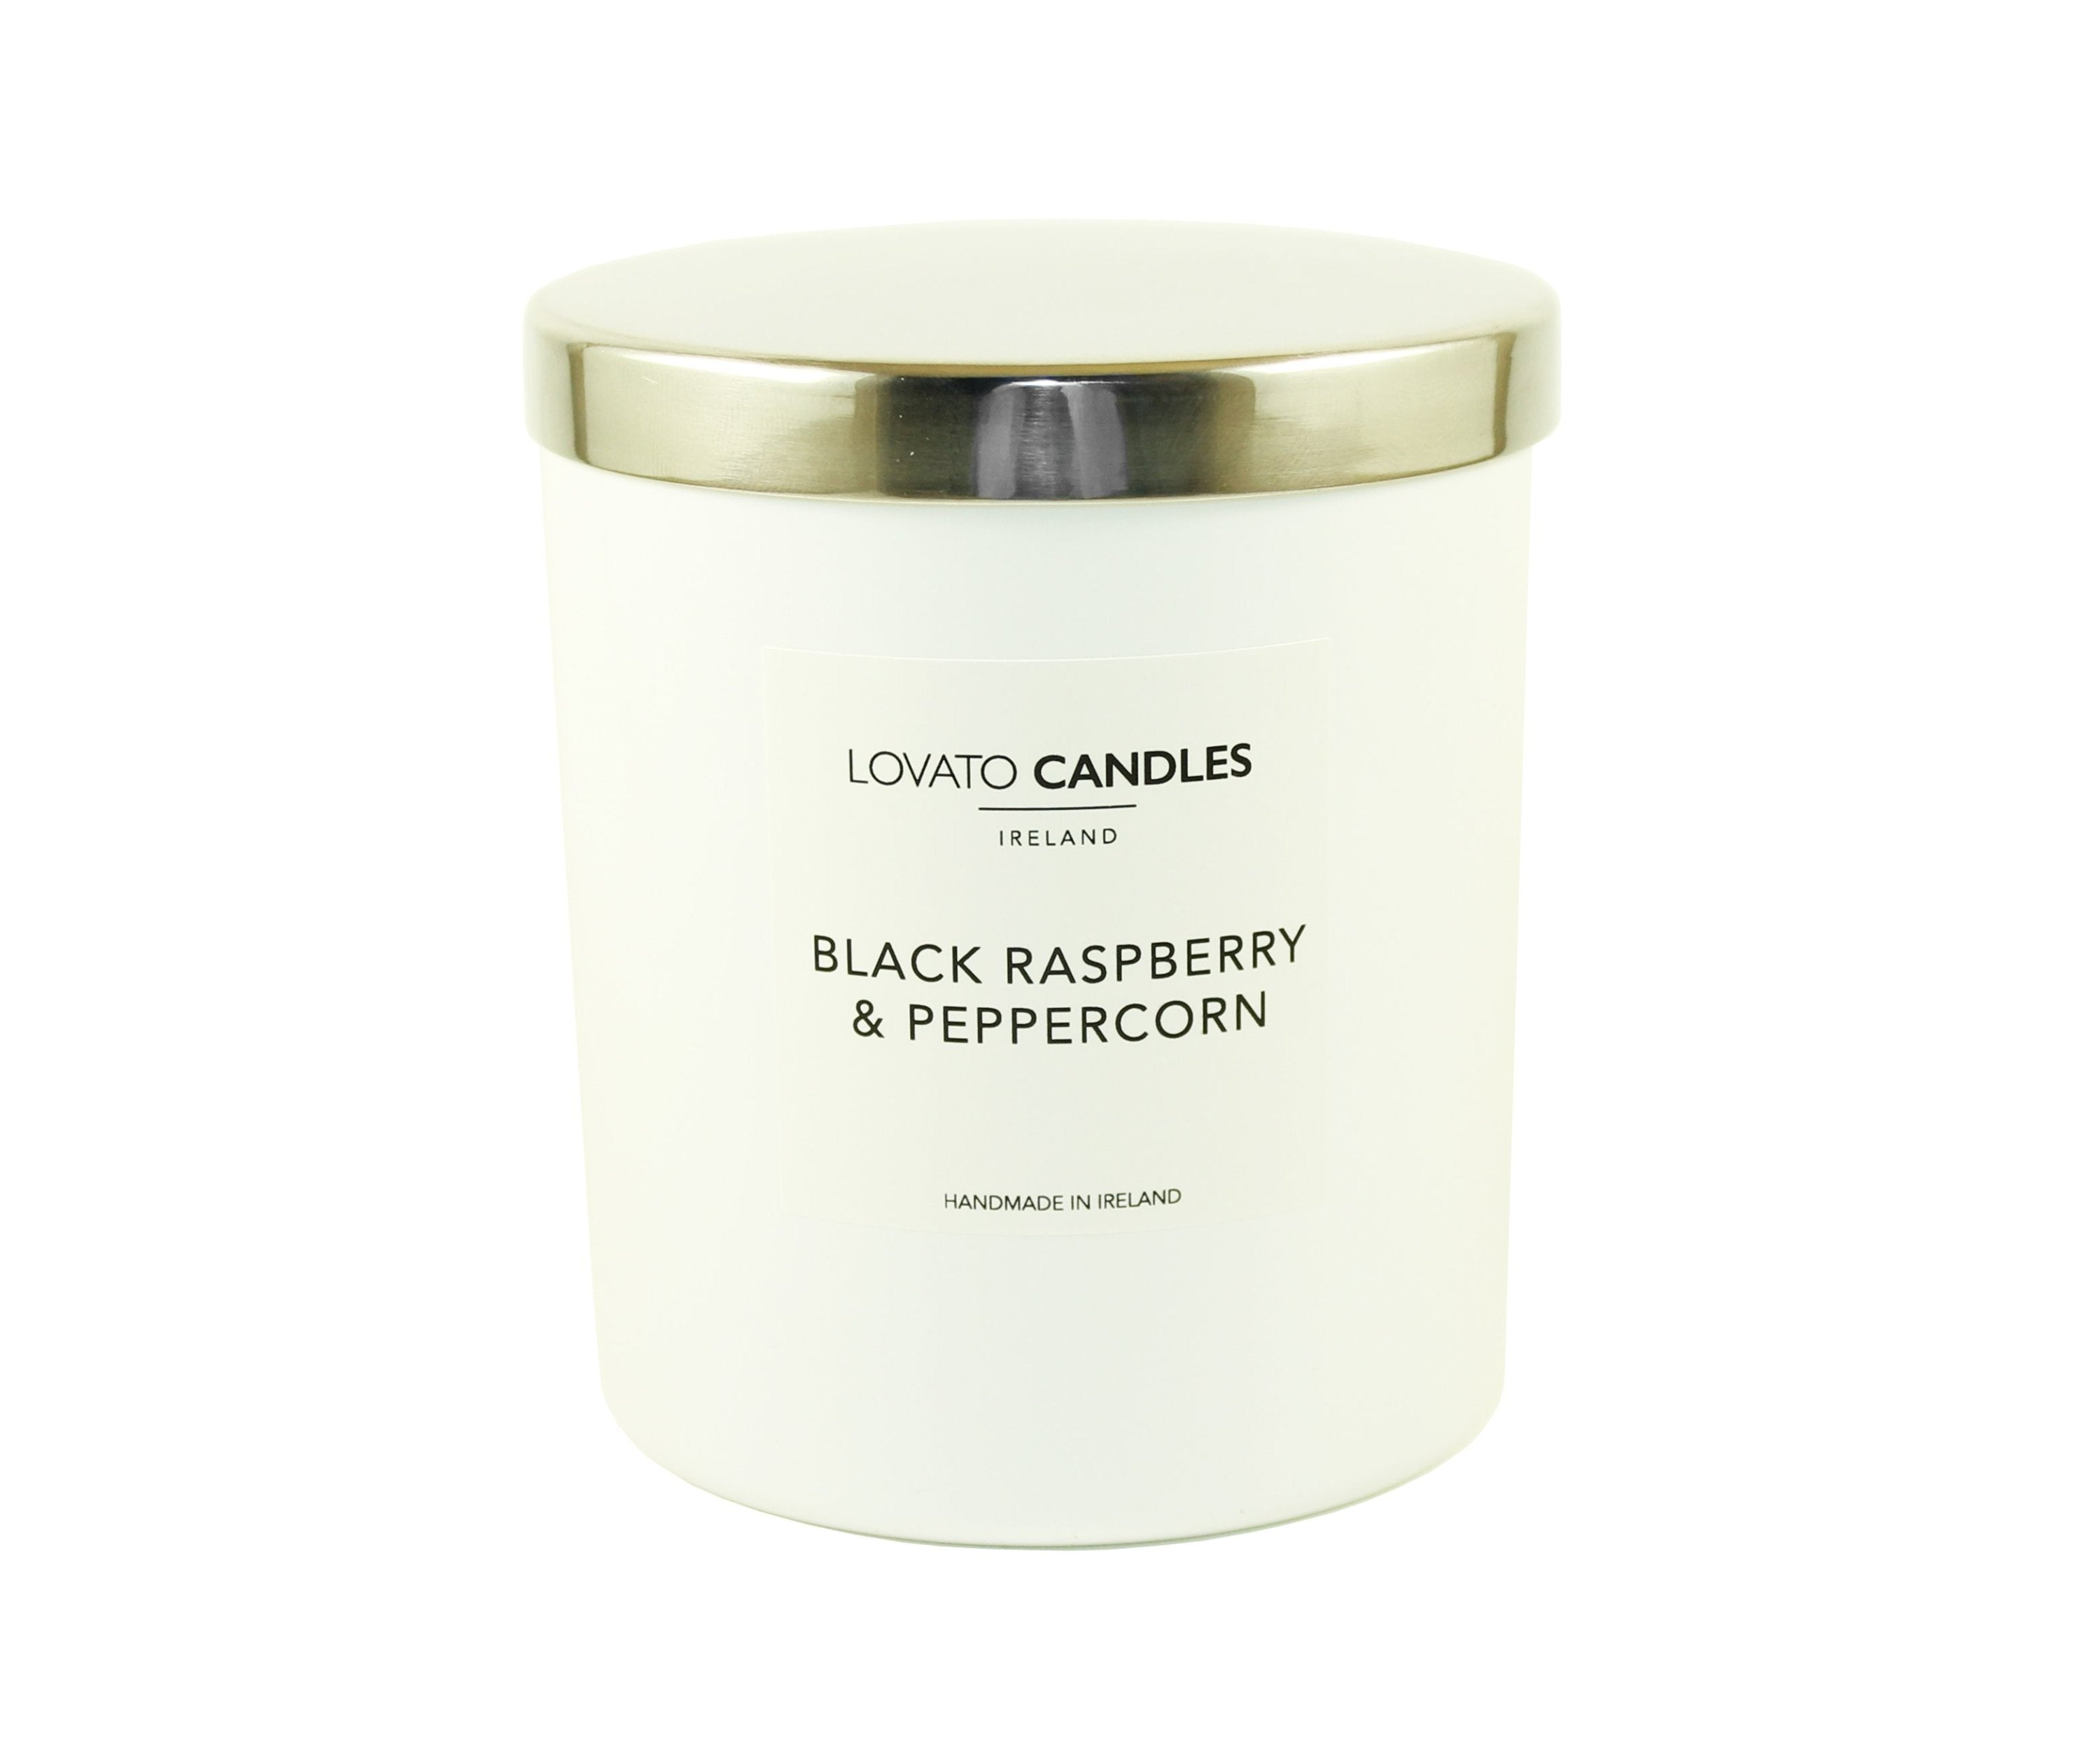 Luxury White Candle - Black Raspberry & Peppercorn - Lovato Candles